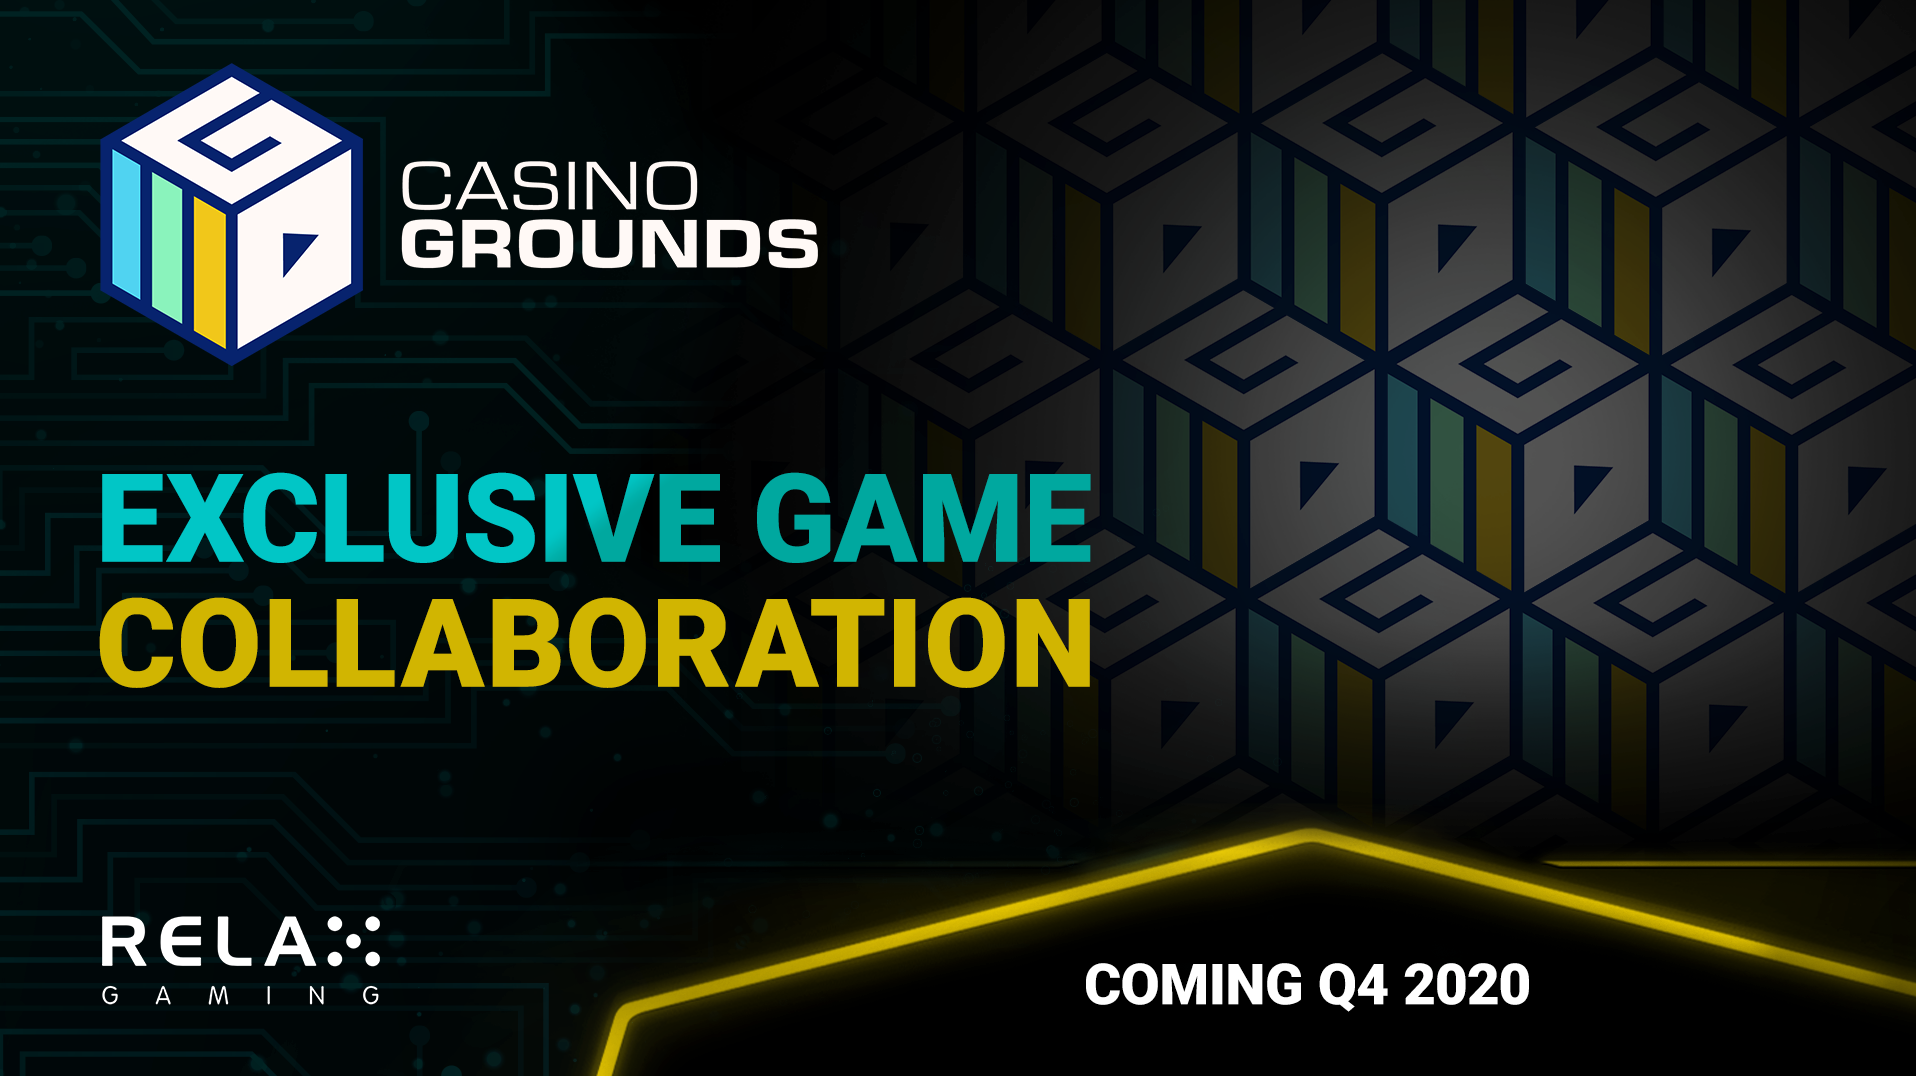 Exclusive game collaboration - relax gaming and CasinoGrounds